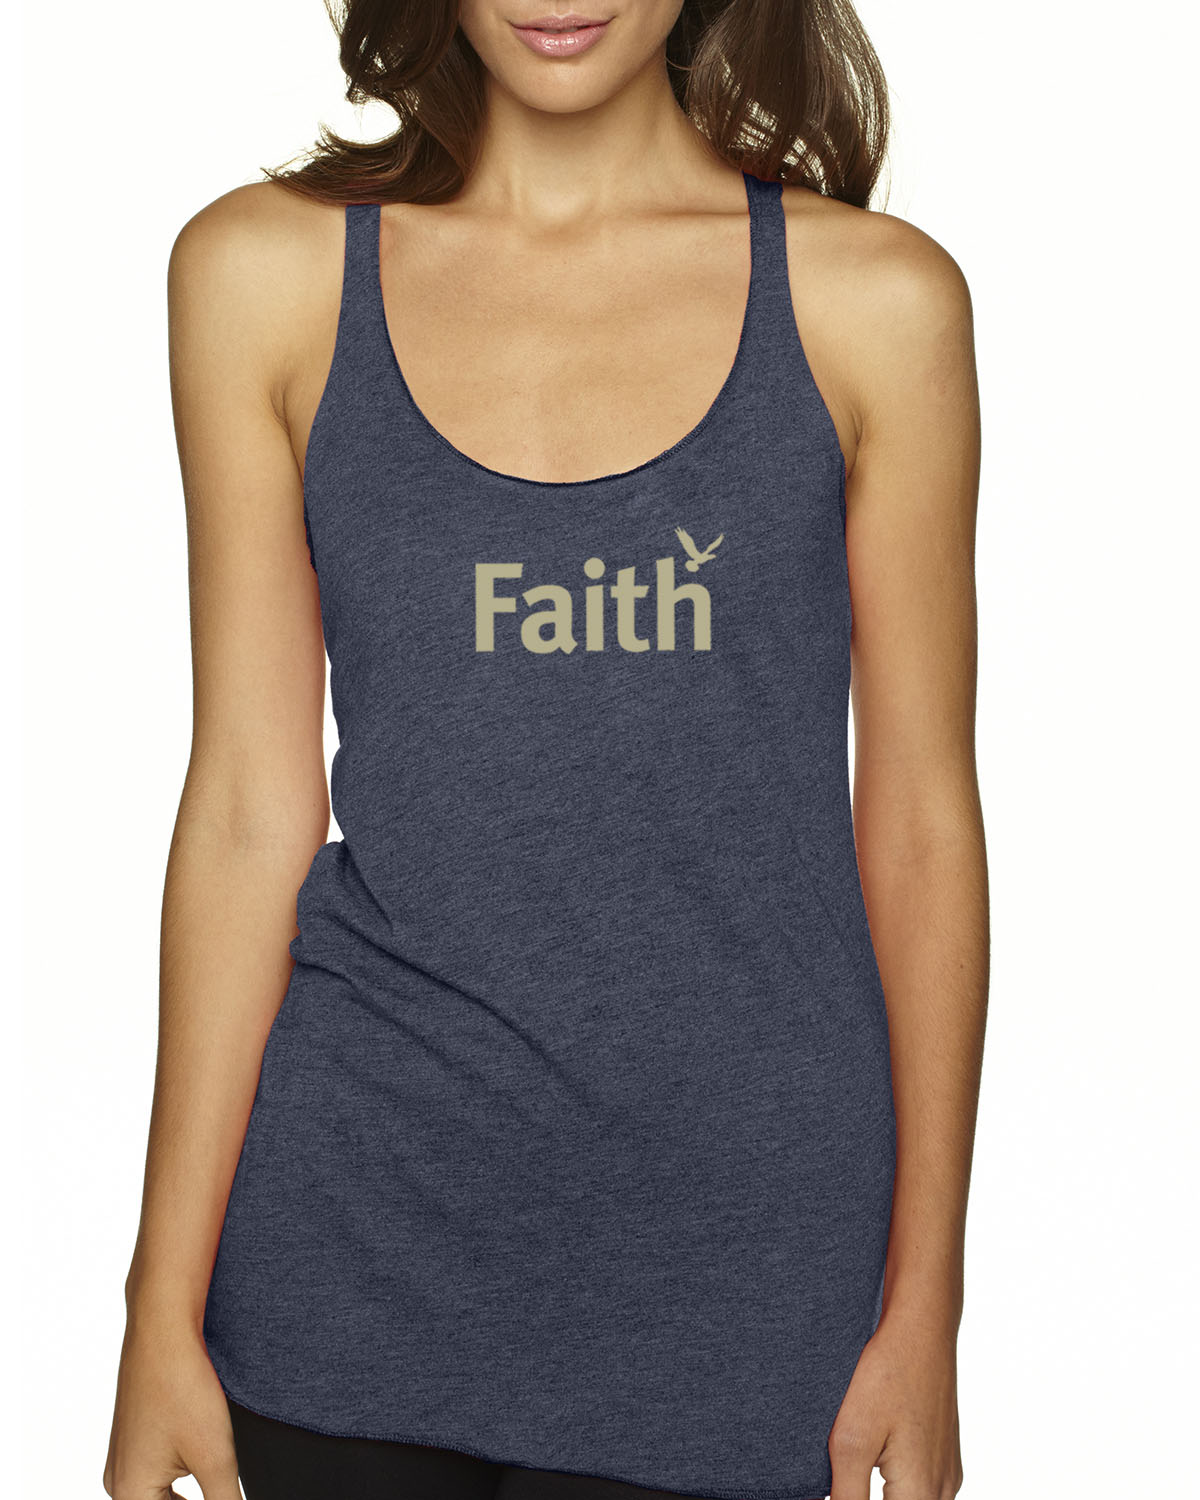 Women's Tri-blend Racer-back tank top (Indigo)